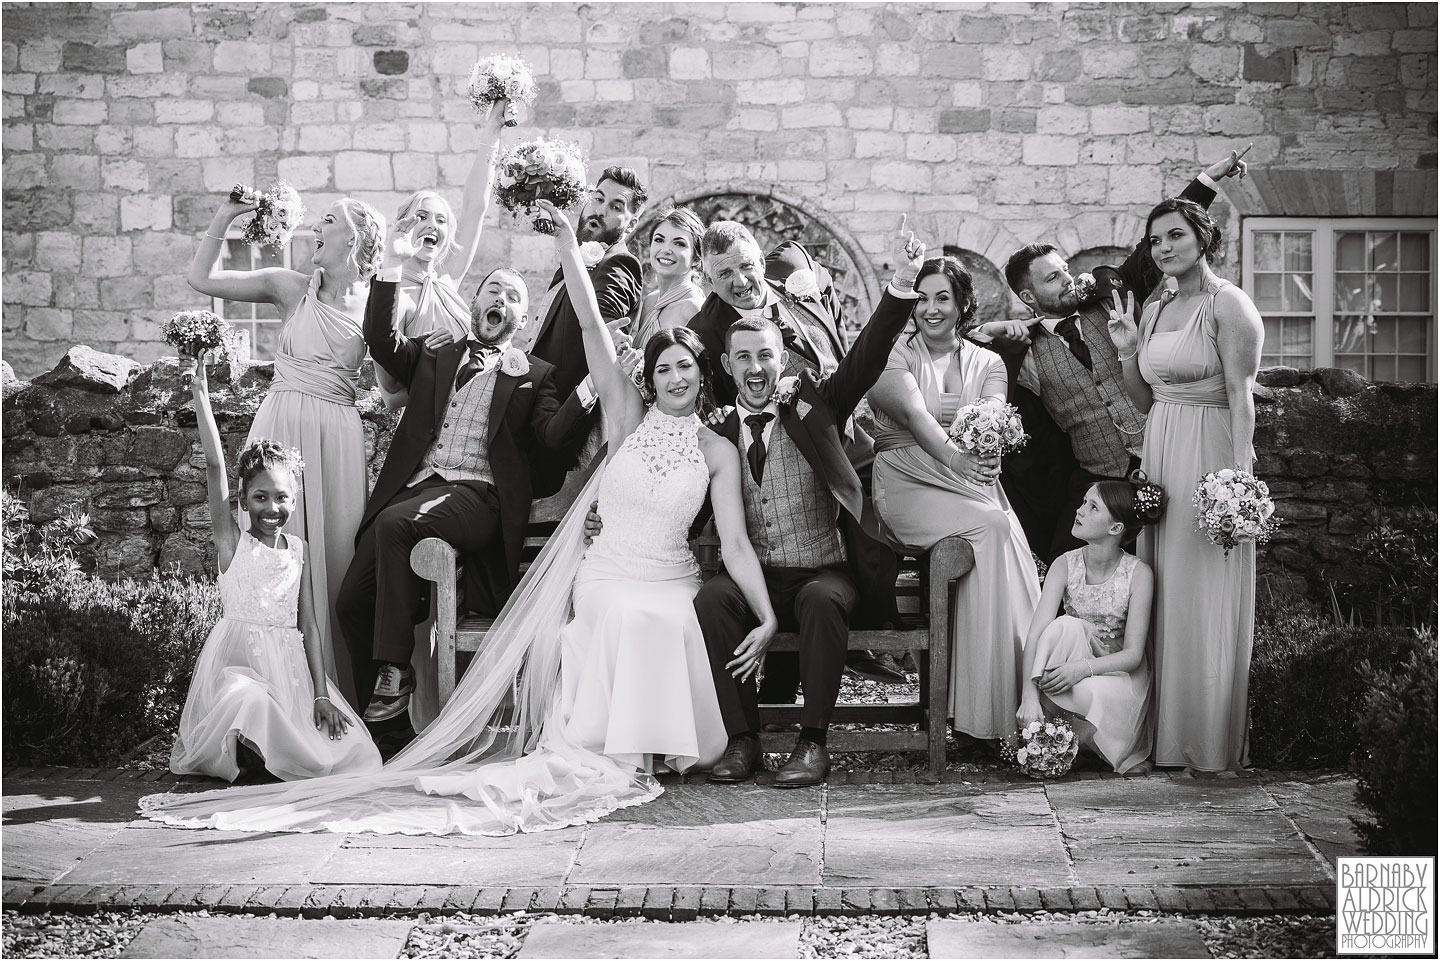 Wedding Party Group photo at Priory Cottages, Priory Cottages Wedding, Syningthwaite Priory photos